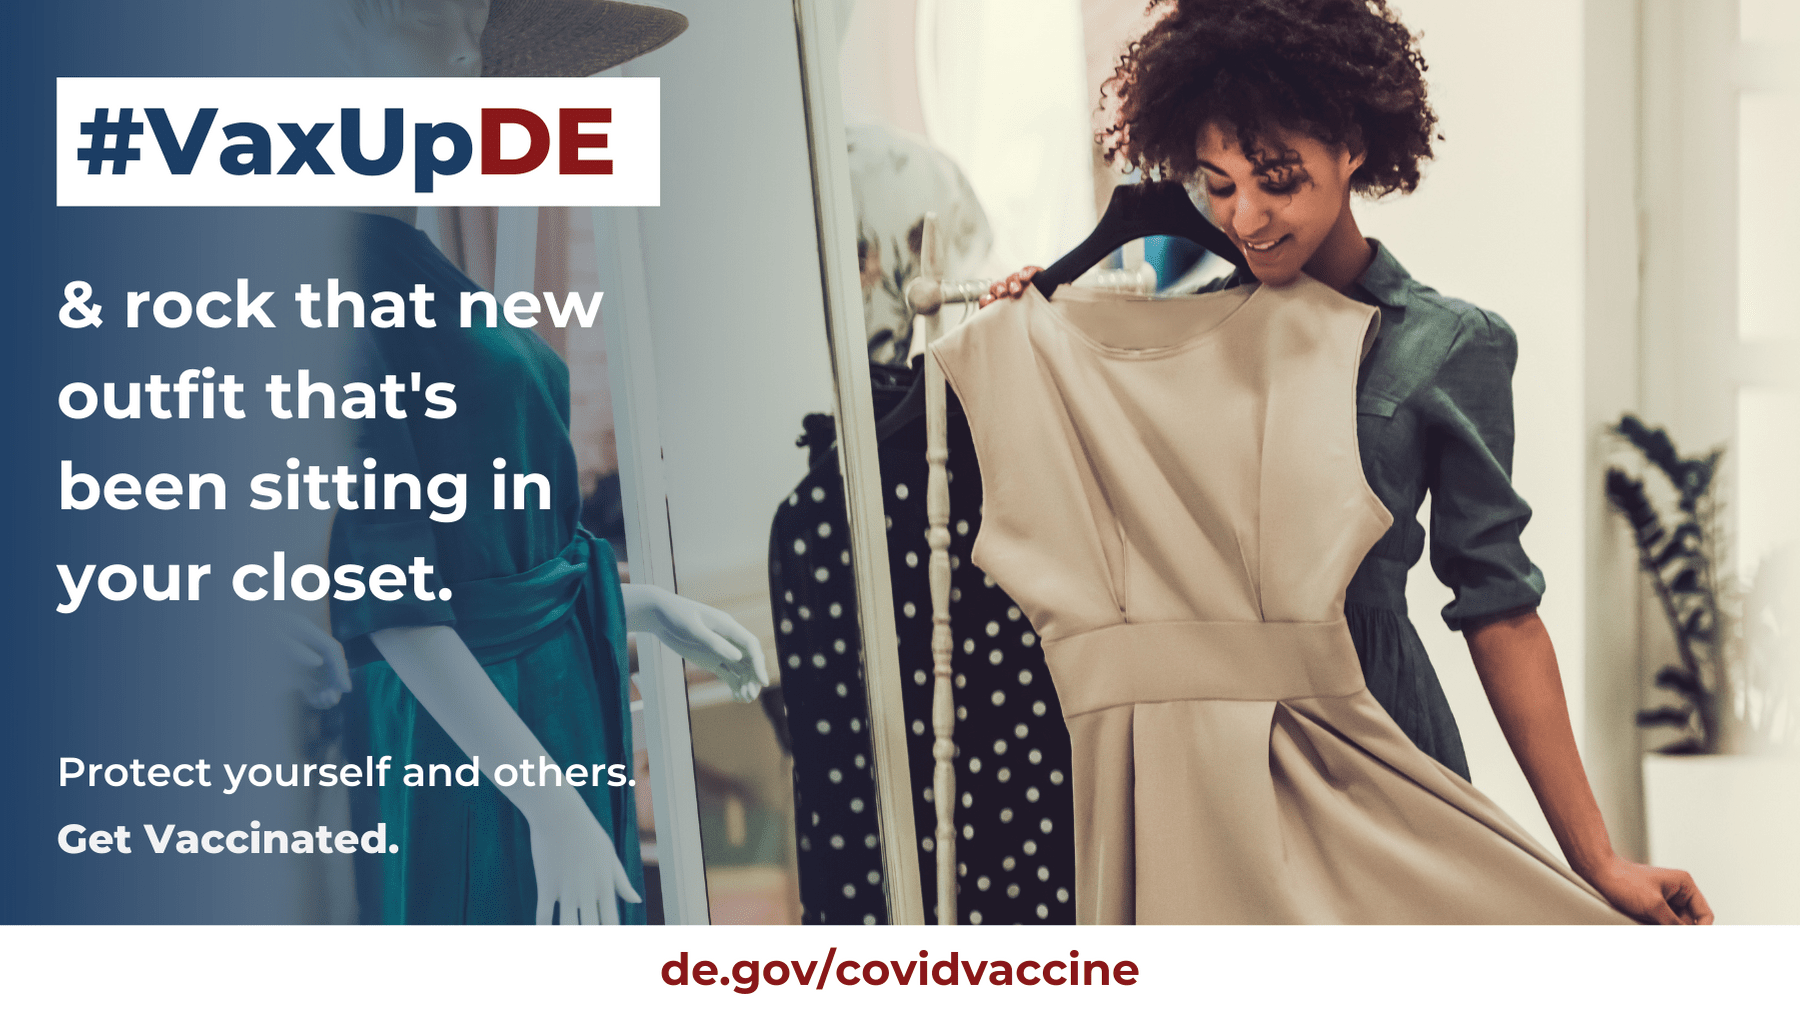 VaxUpDE Protect yourself and others. Get vaccinated.Woman holding up a dress that she is hoping to purchase and wear.